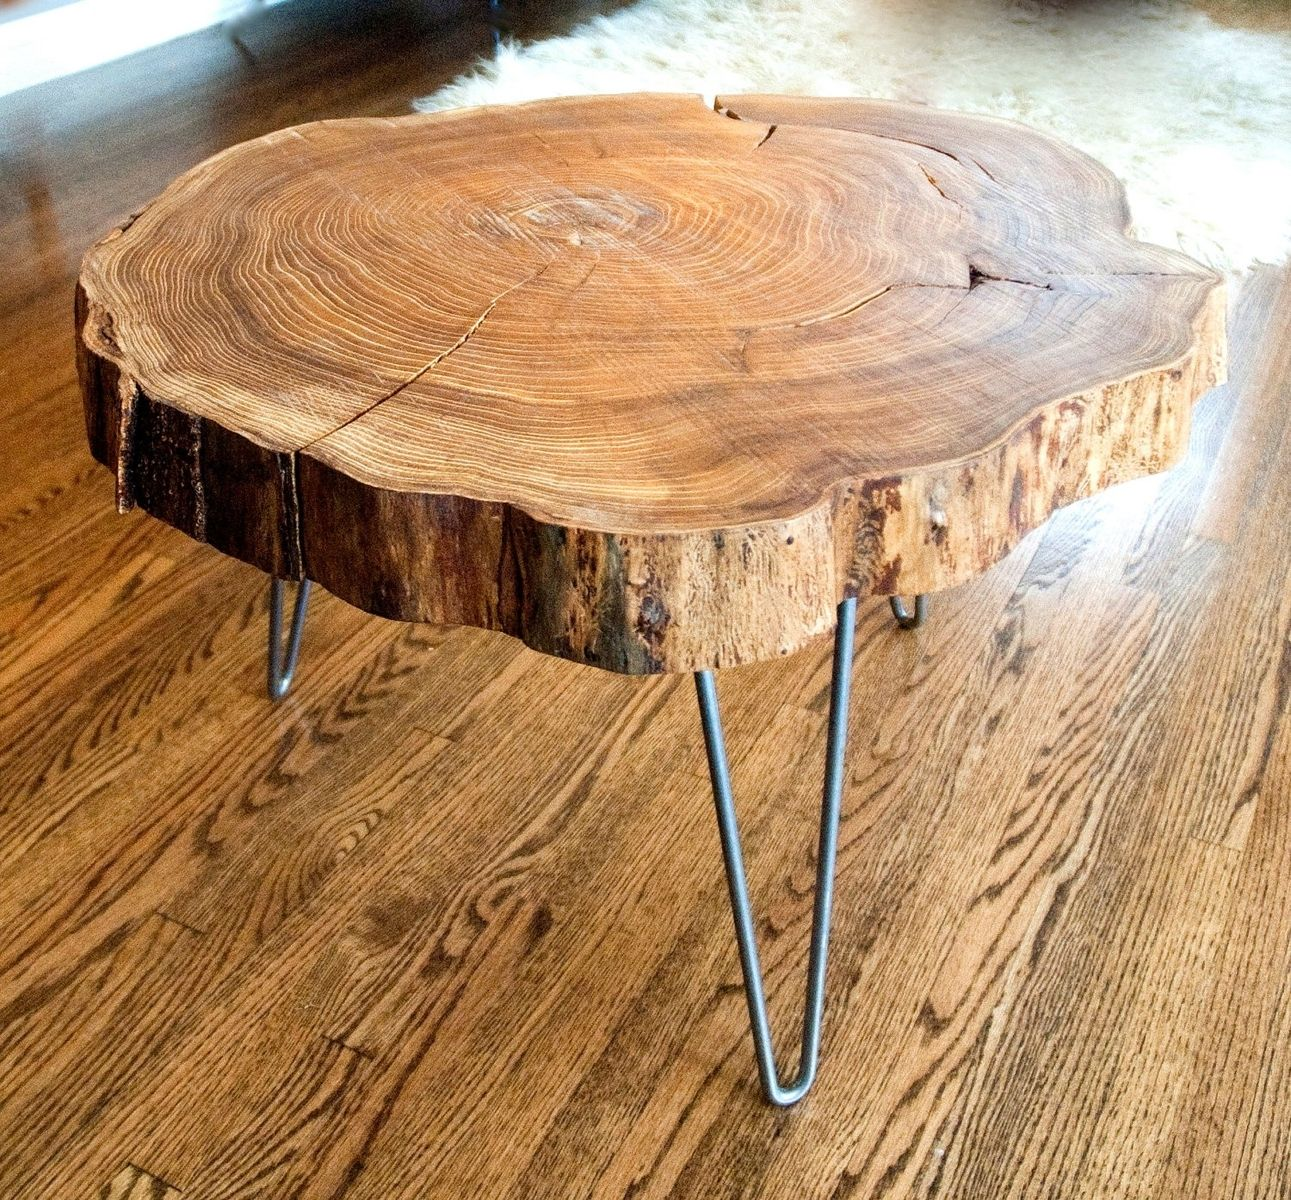 Custom Natural Live Edge Round Slab Side Table Coffee  : 81848217491 from www.custommade.com size 1291 x 1200 jpeg 404kB